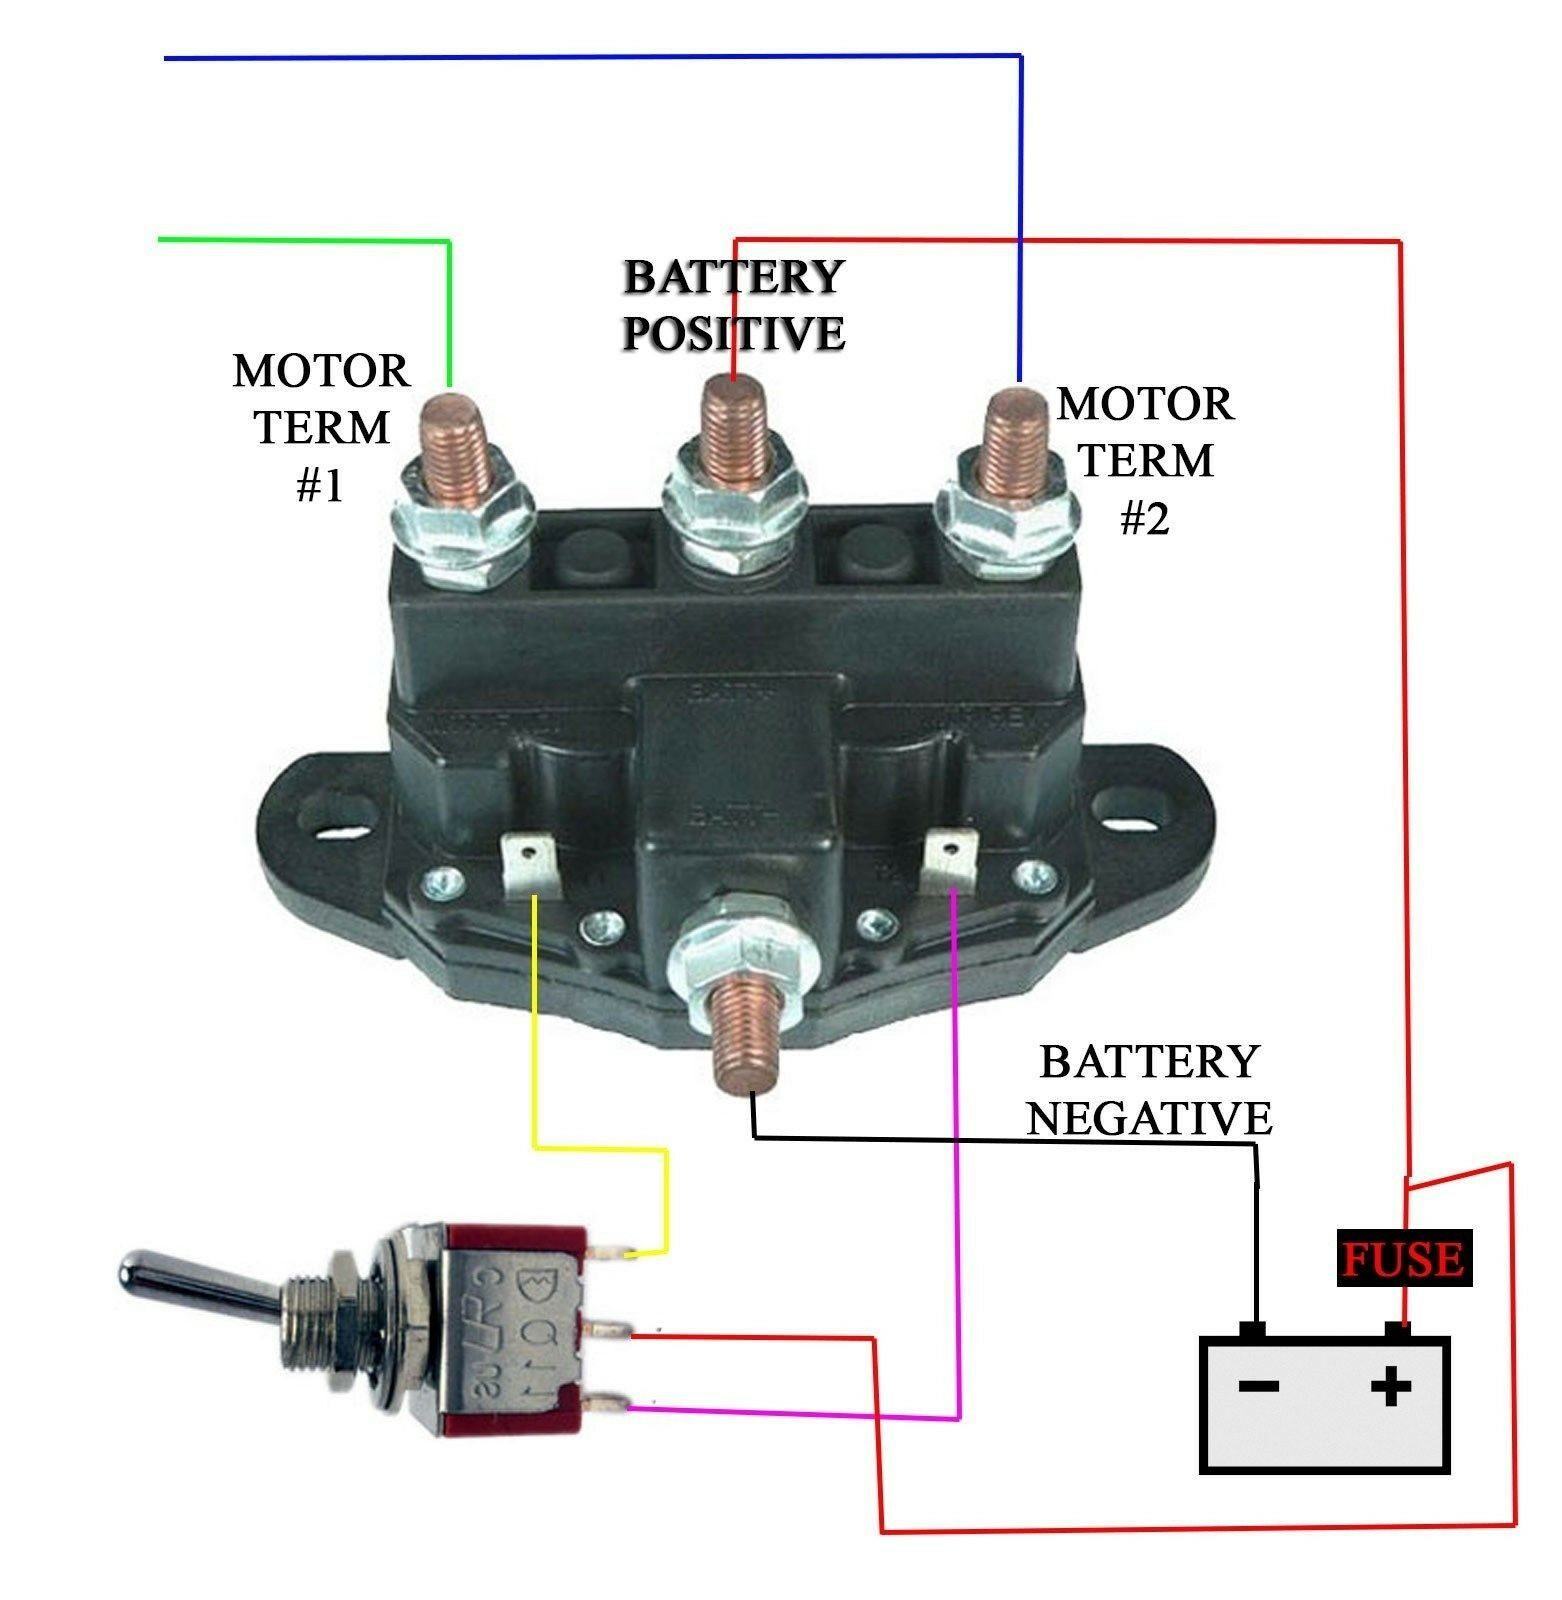 hight resolution of relay winch motor reversing solenoid switch 12 volt bidirectionalnorton secured powered by verisign